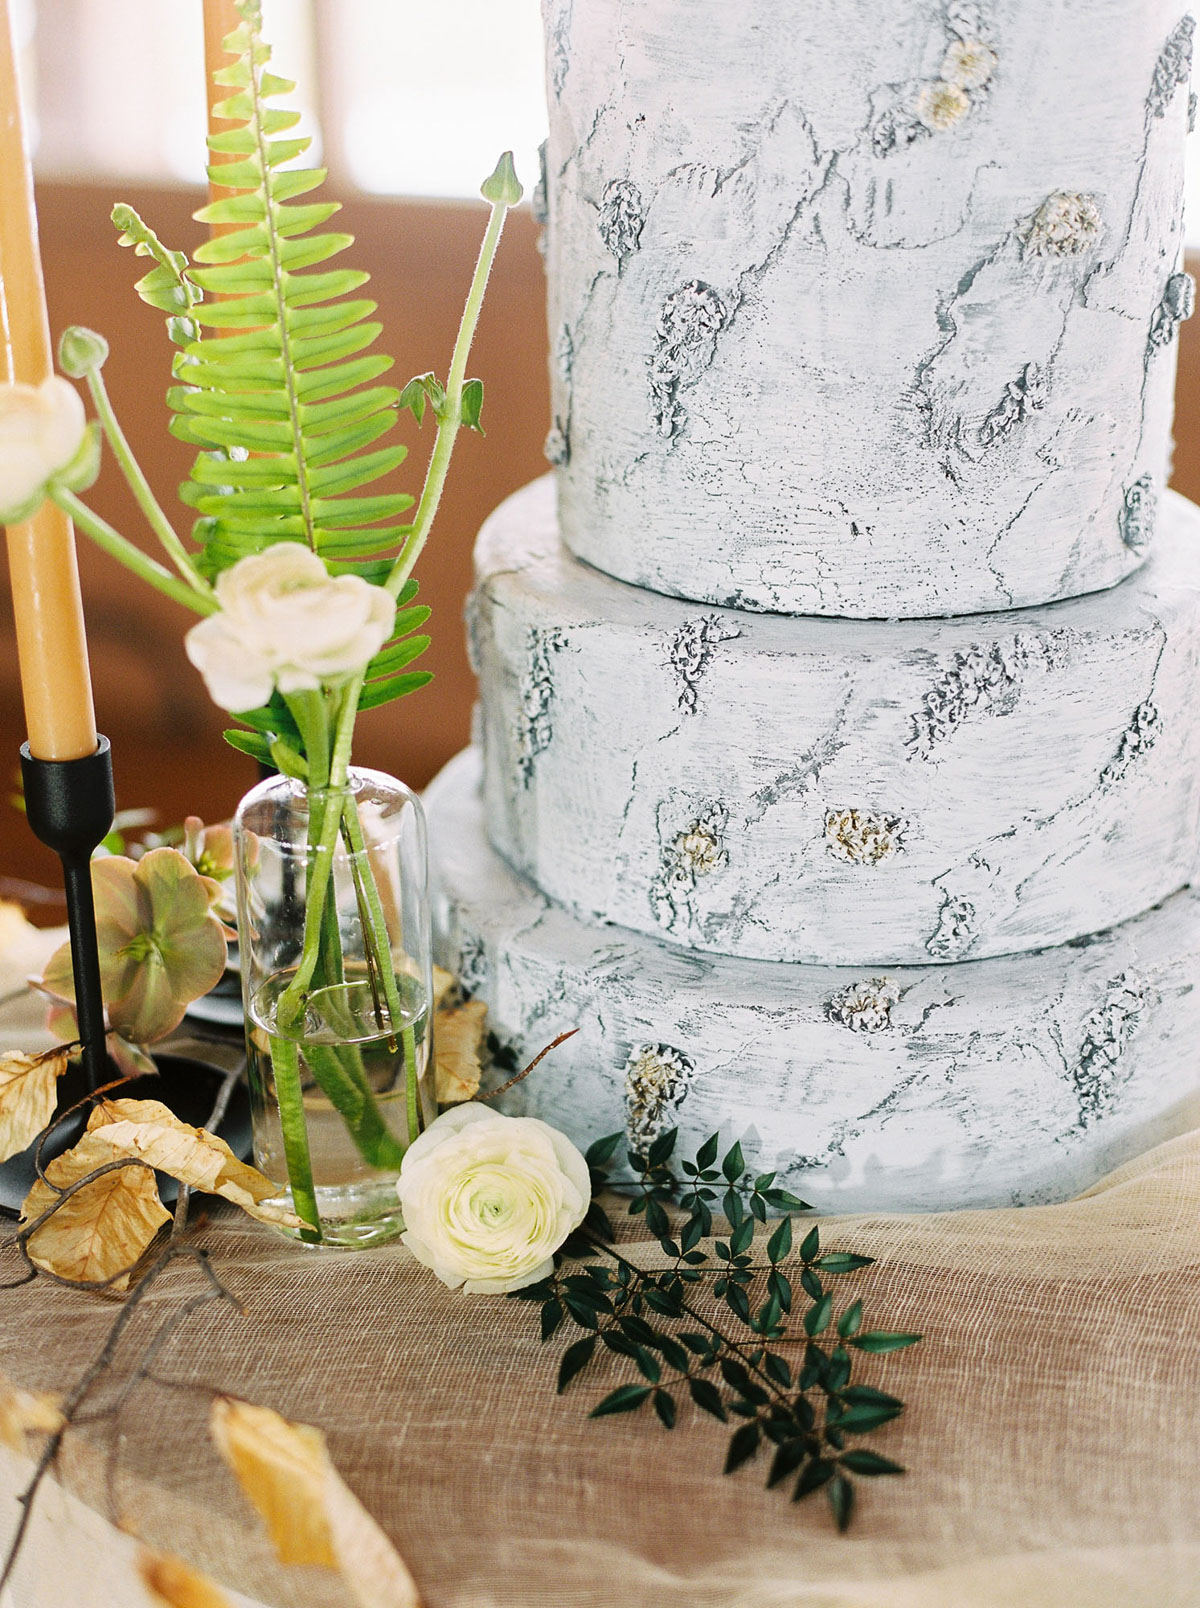 will-reid-photo-vineyard-bride-swish-list-kurtz-orchards-market-niagara-on-the-lake-wedding-editorial-43.jpg